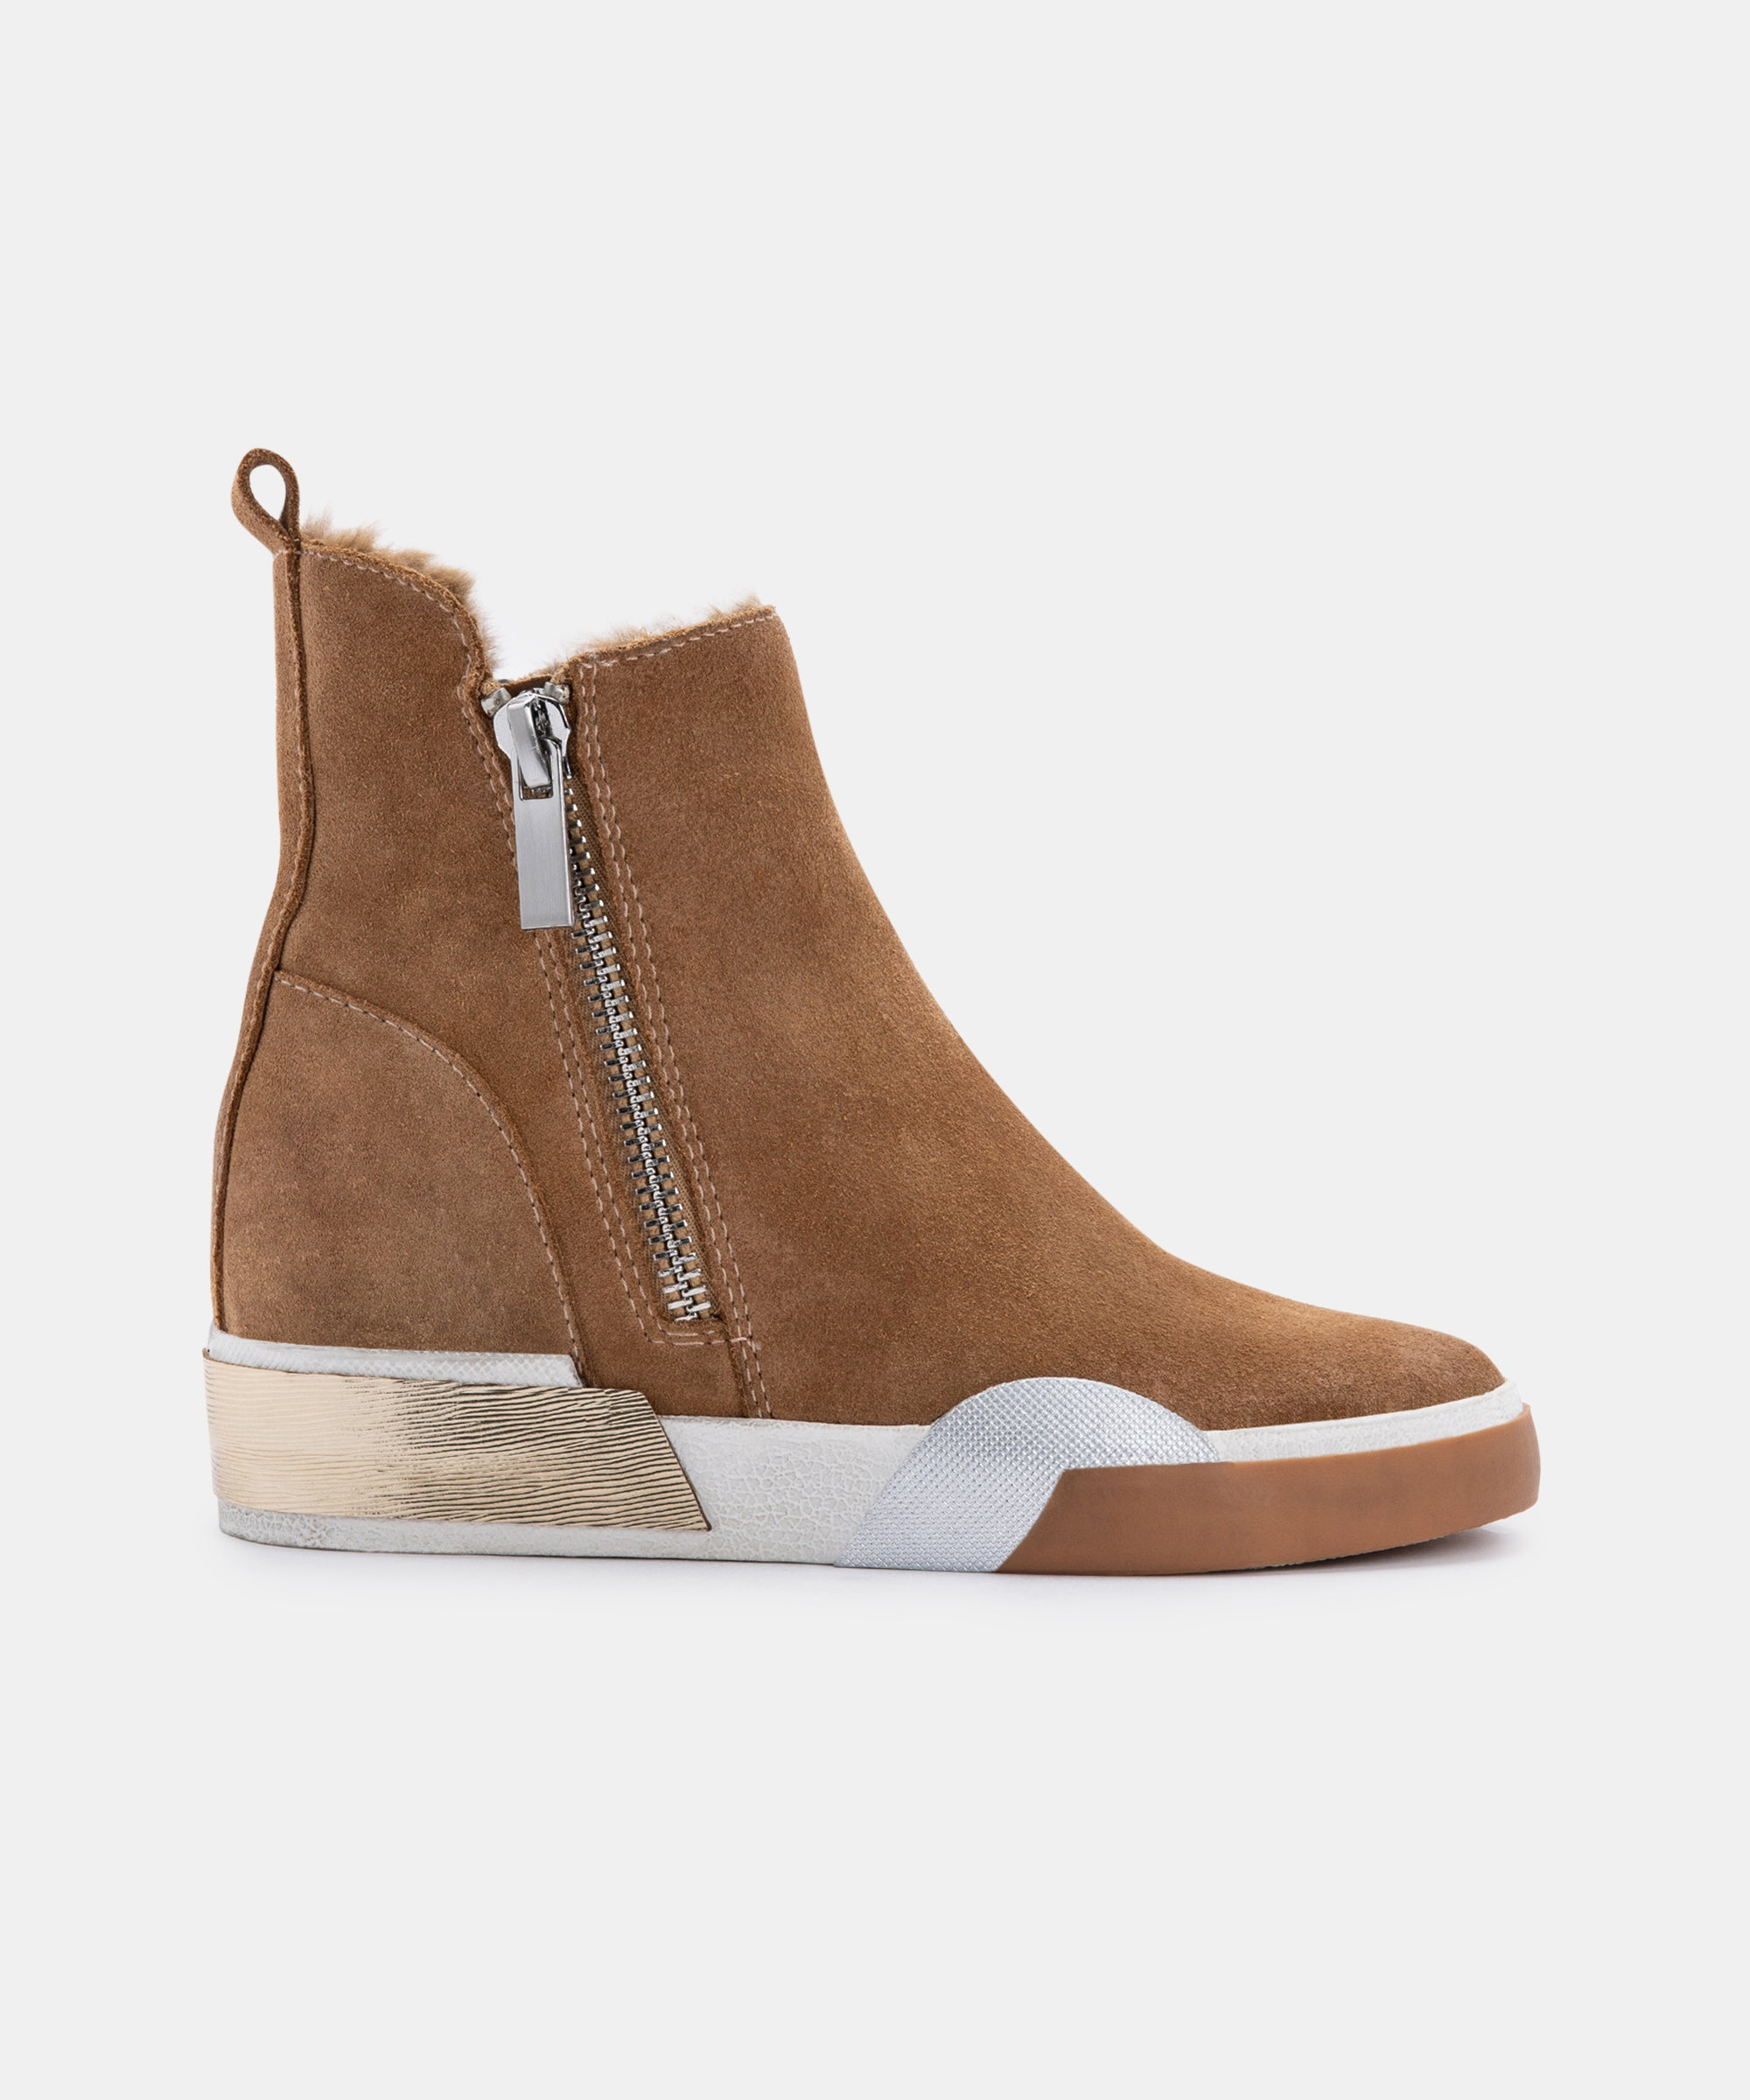 ZELMA SNEAKERS IN CASHEW SUEDE